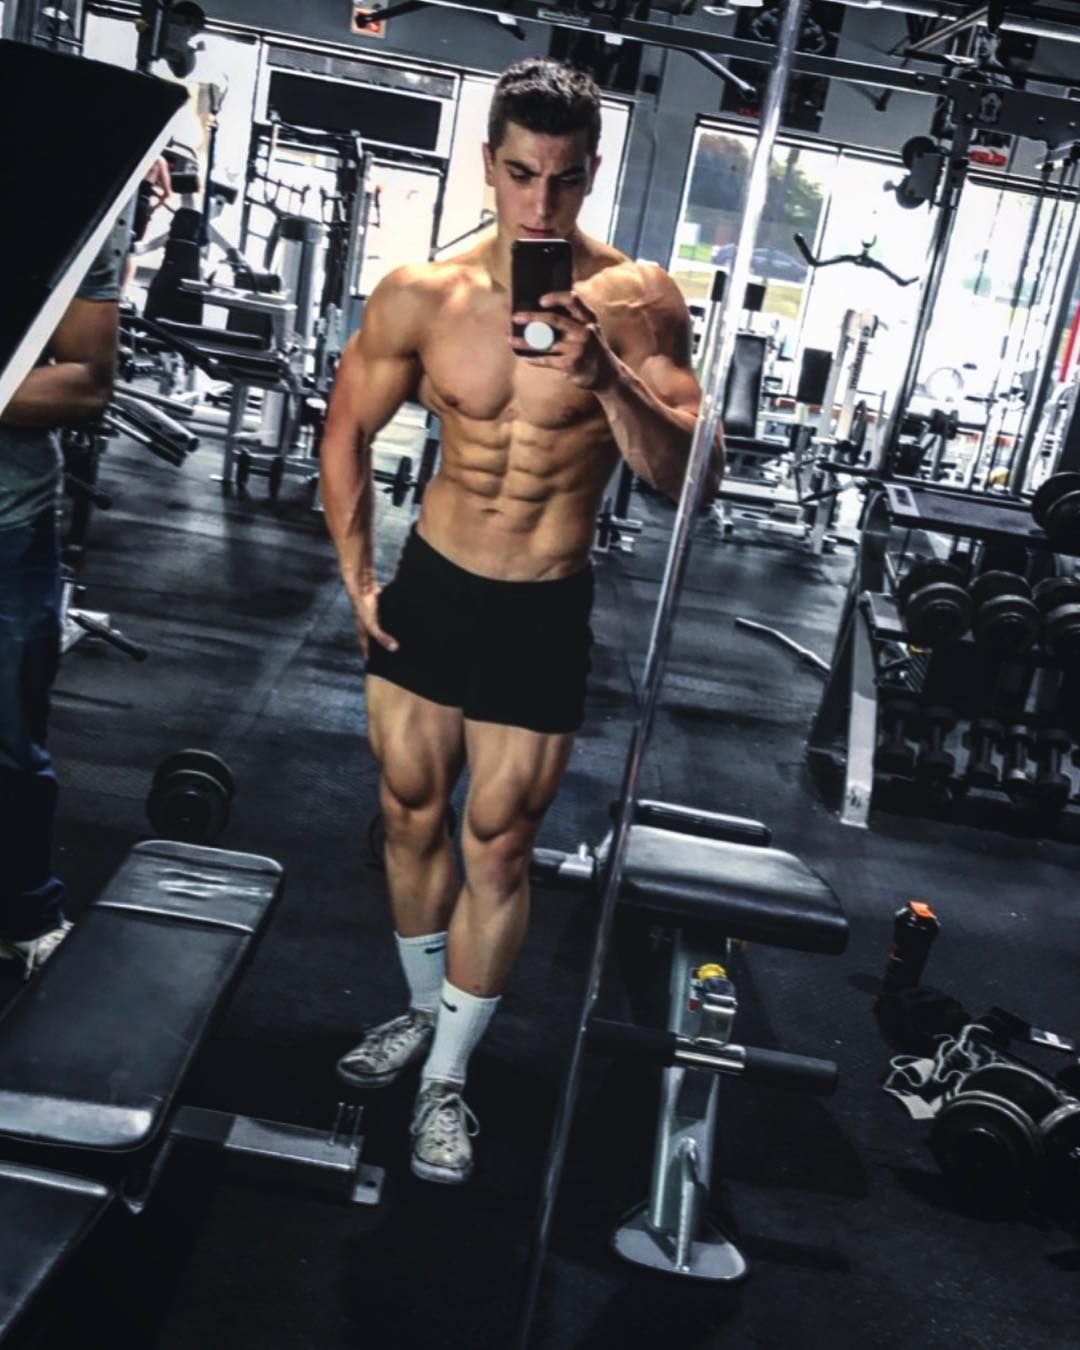 DanGymBro: Get to know aesthetic fitness athletes and